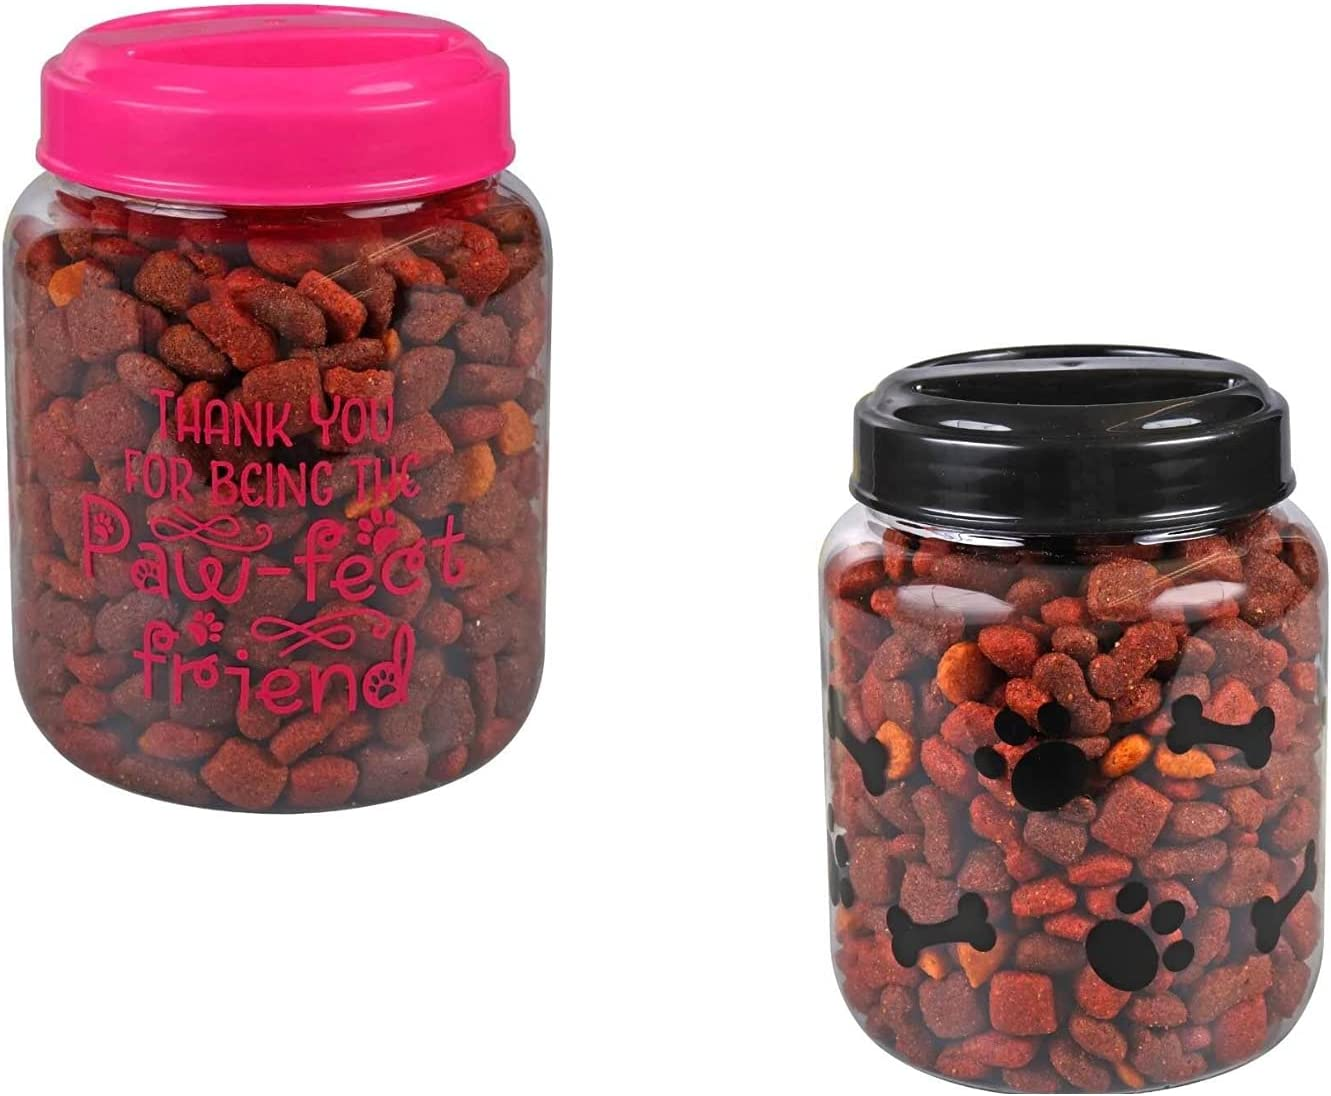 """Spreading Love 2 You-BPA-Free Plastic Airtight Dog Cat Pet Treat & Food Storage Containers/Canisters (1) Pink- """"Thank You for Being The Paw-FECT Friend"""" & (1) Black -covered in bones & paws (Set of 2)"""